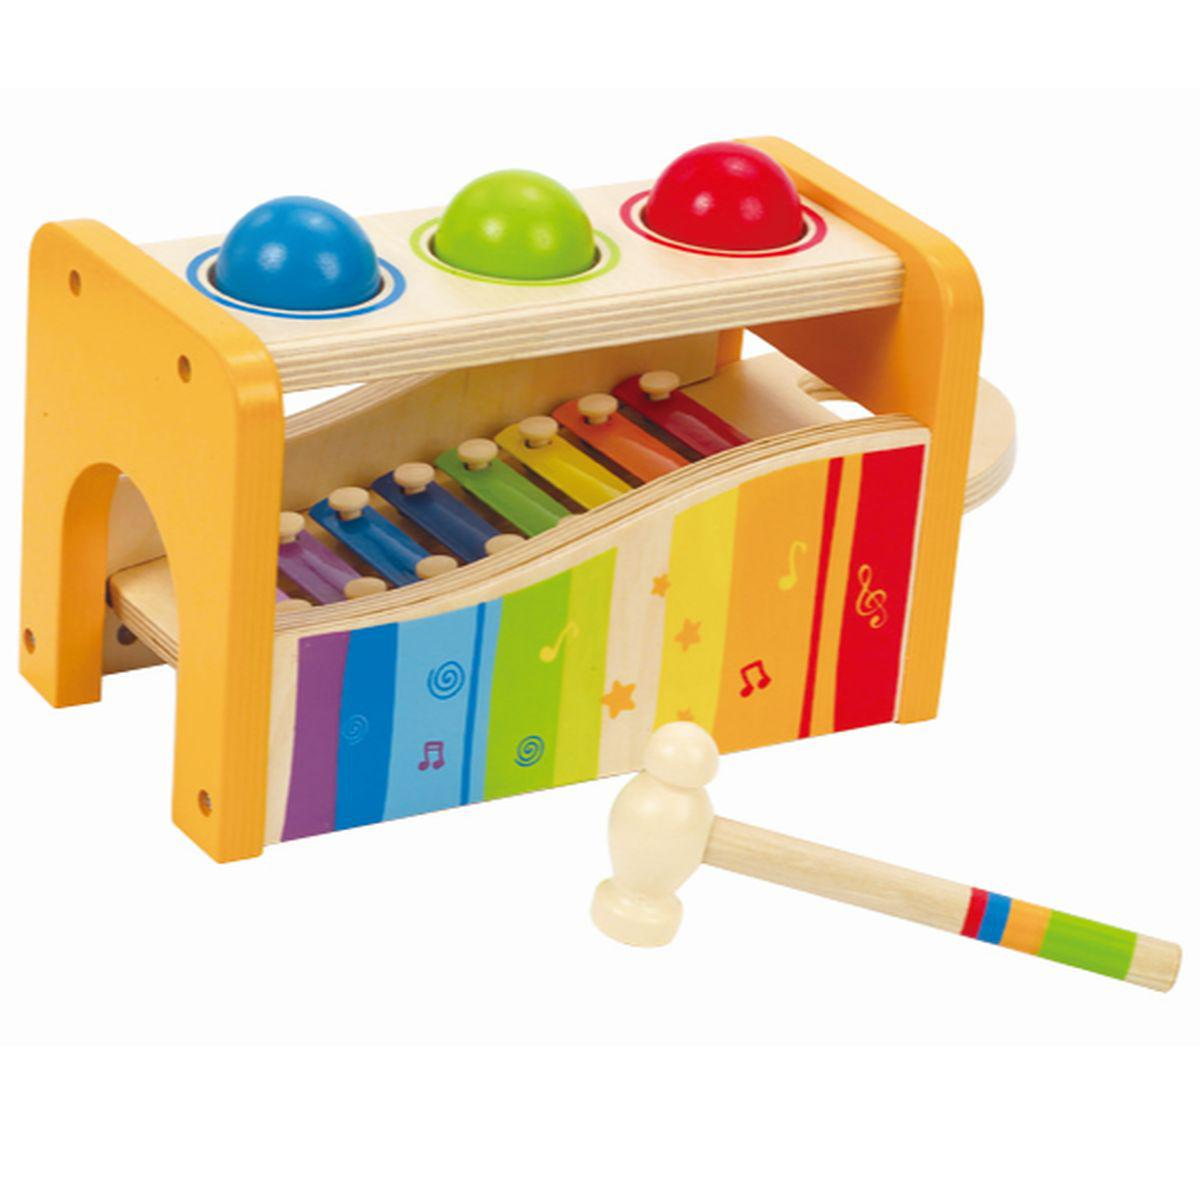 POUND AND TAP BENCH  by Hape Xylophone